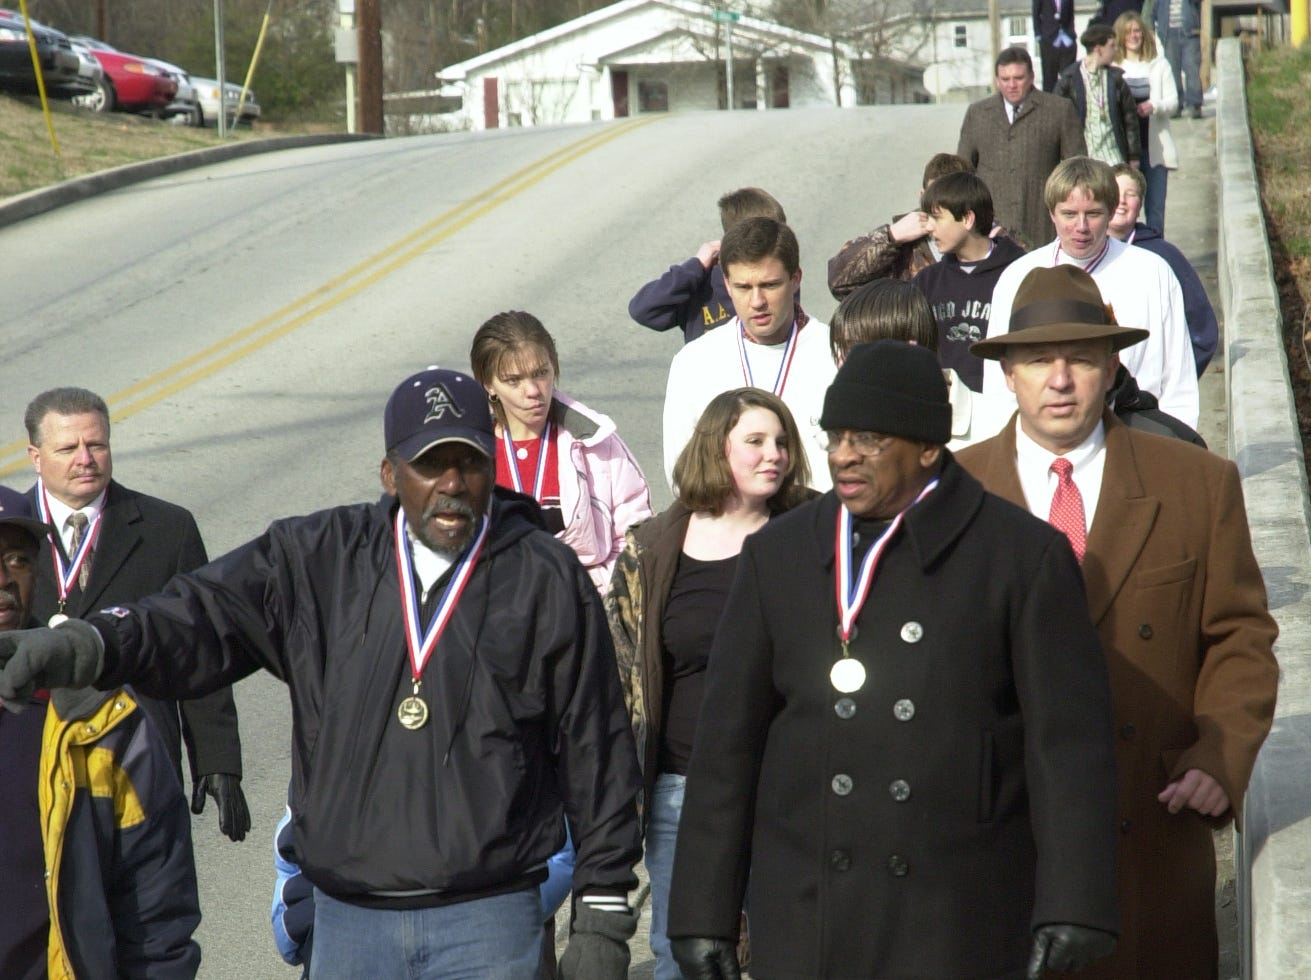 """Alfred Williams, left, recalls a memory from the days 50 years ago when he was one of the original """"Clinton 12"""" who became the first black students to integrate formerly all-white Clinton High School, on Feb. 10, 2006. Also pictured in front during the reenactment of those walks is another member of that group, Bobby Cain."""